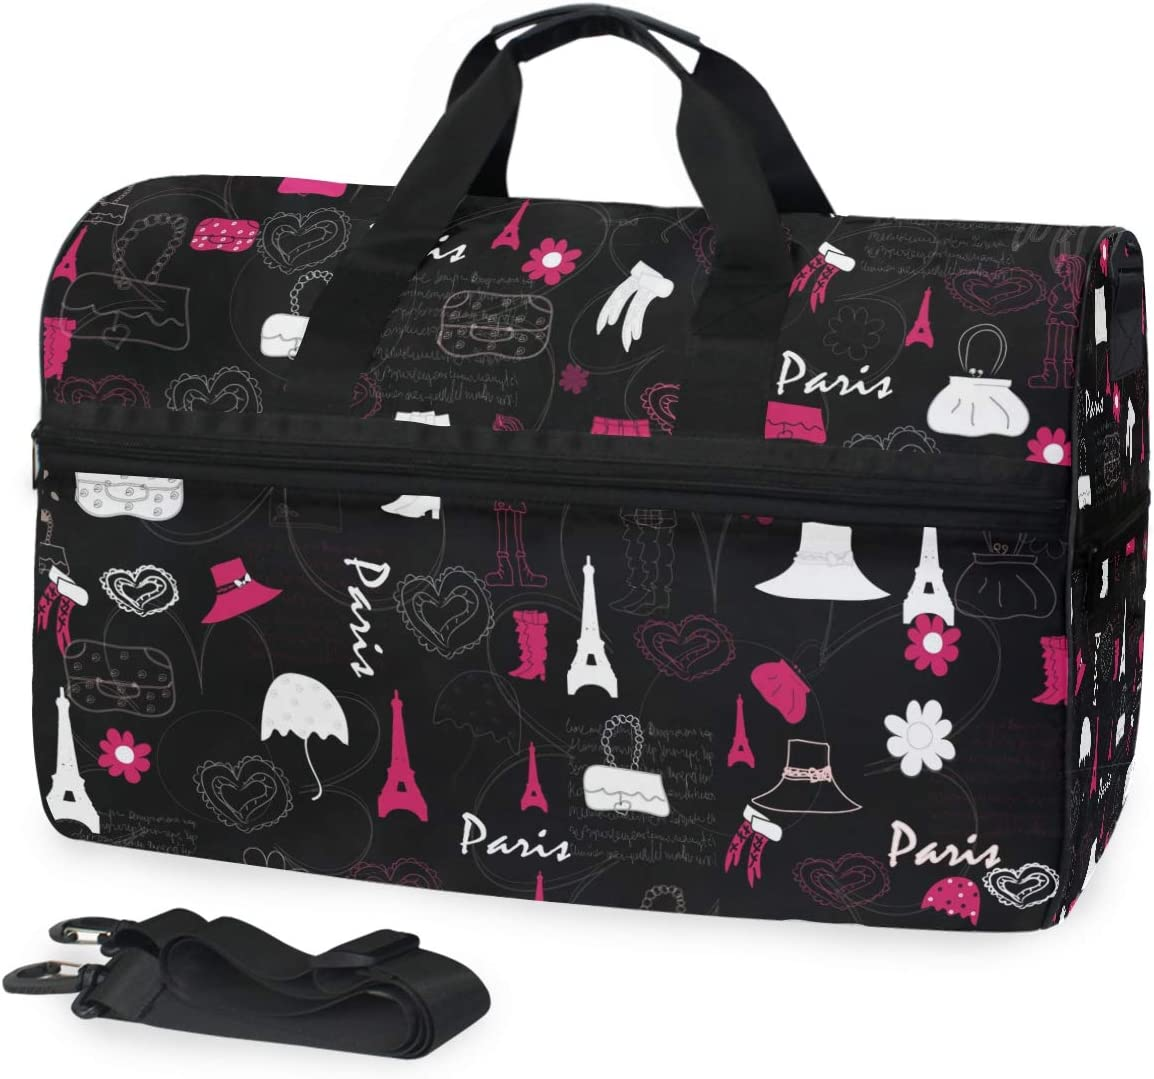 AHOMY Cute Eiffel Tower Hat Sports Gym Bag with Shoes Compartment Travel Duffel Bag